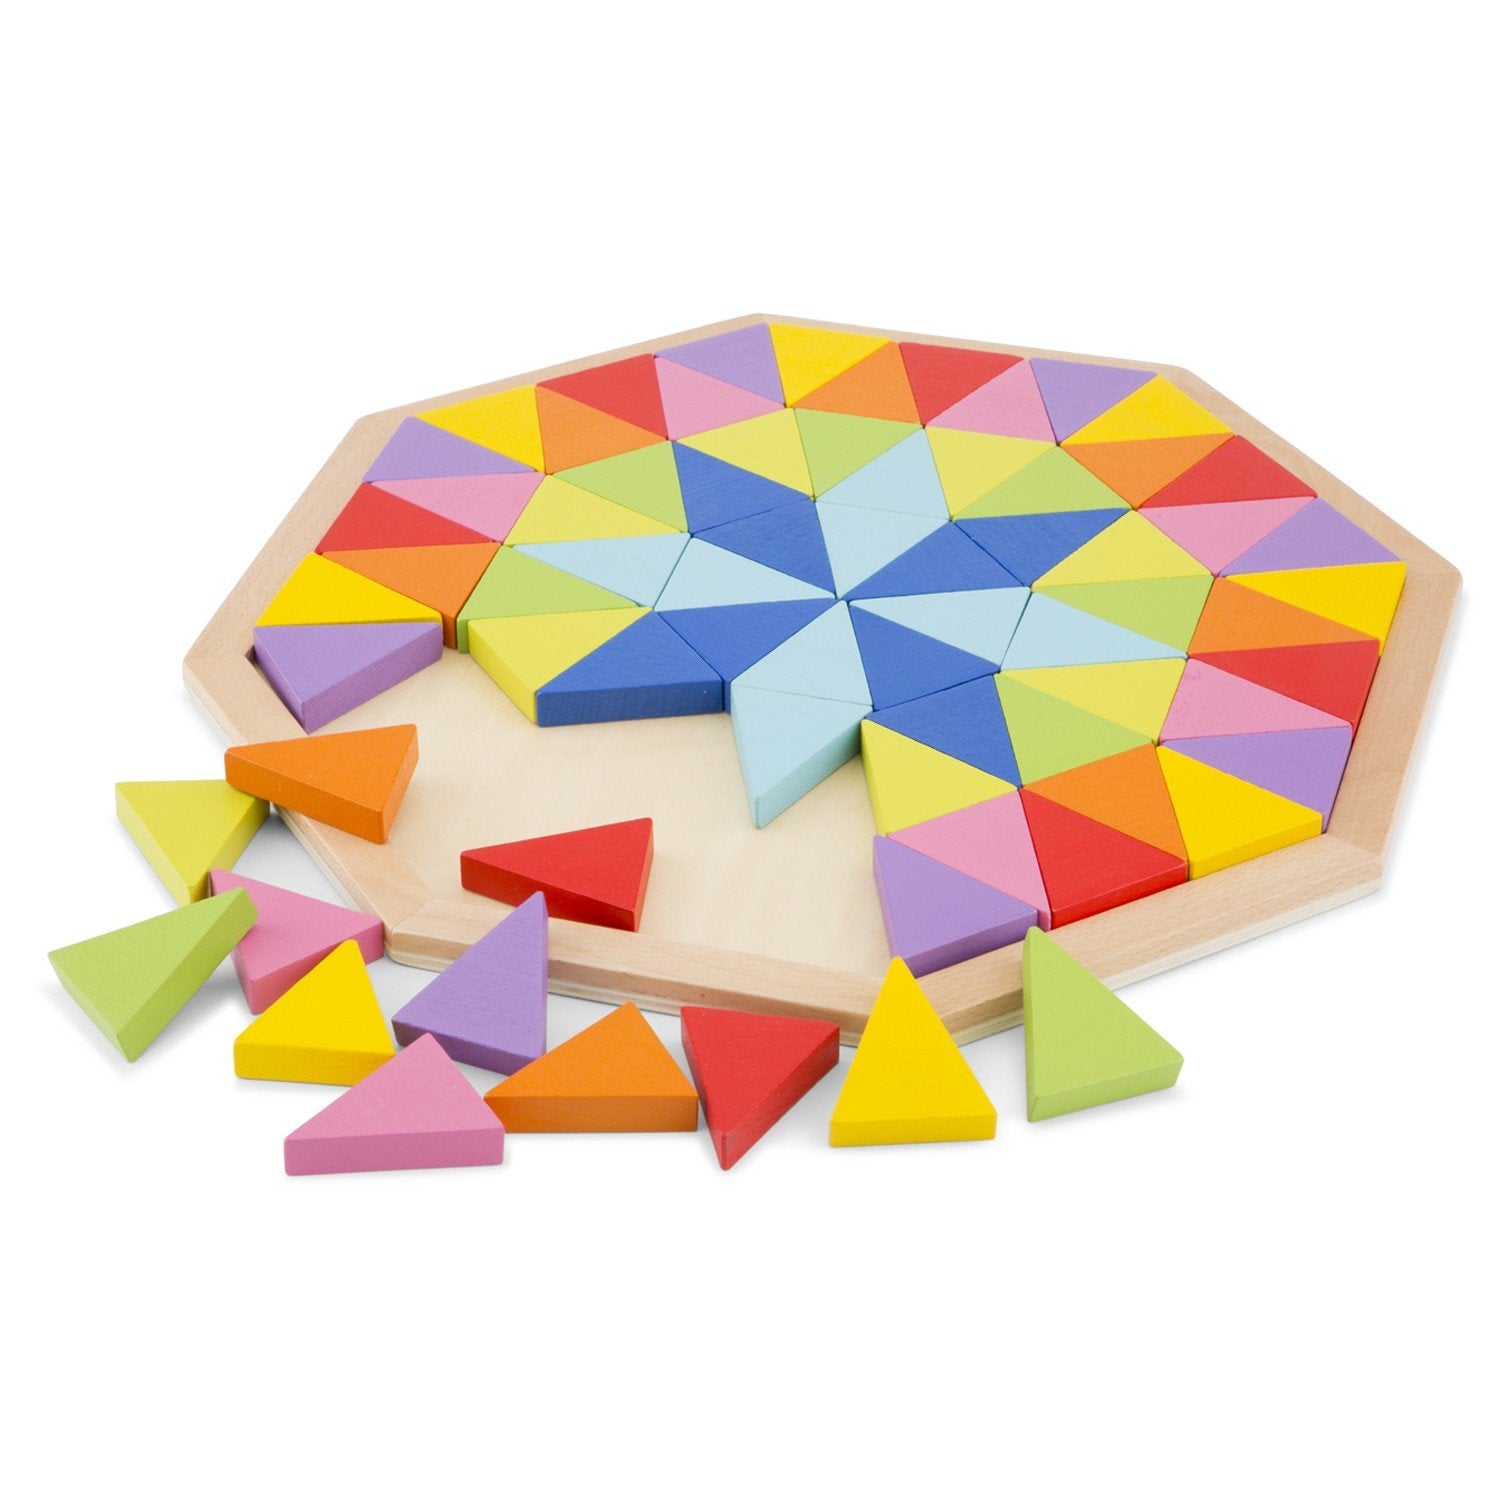 New Classic Toys Rainbow Wooden Octagon Puzzle New Classic Toys Puzzles at Little Earth Nest Eco Shop